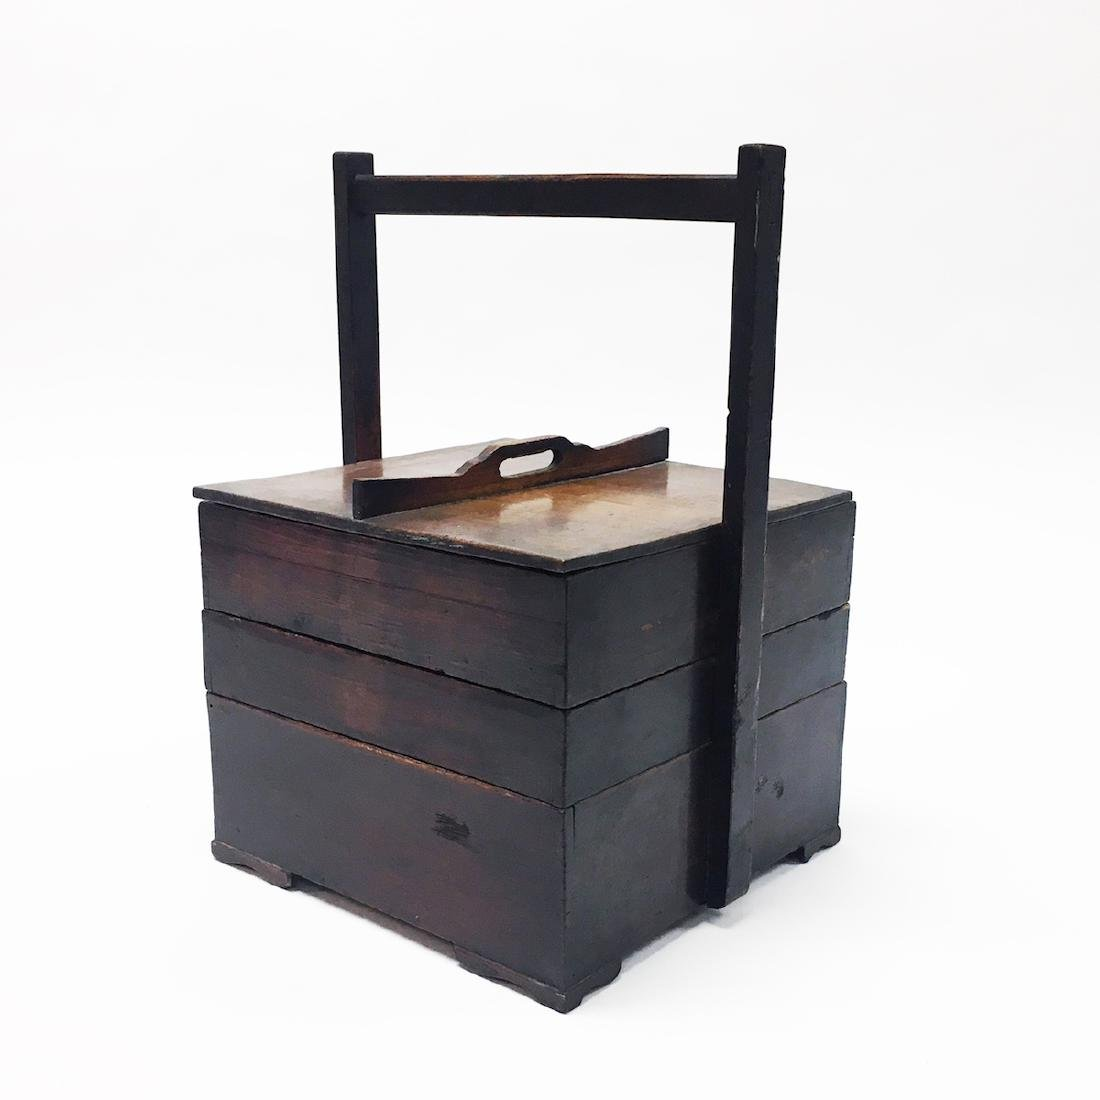 Japanese 19th Century Food Delivery Box